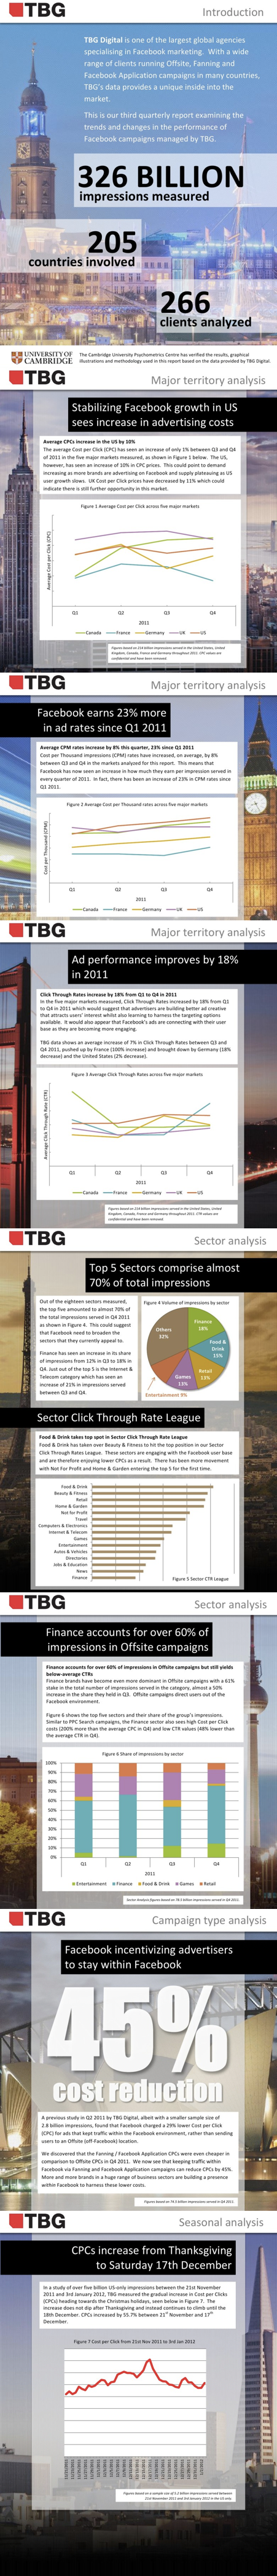 TBG Digital Global Facebook Advertising Report Q1 2012